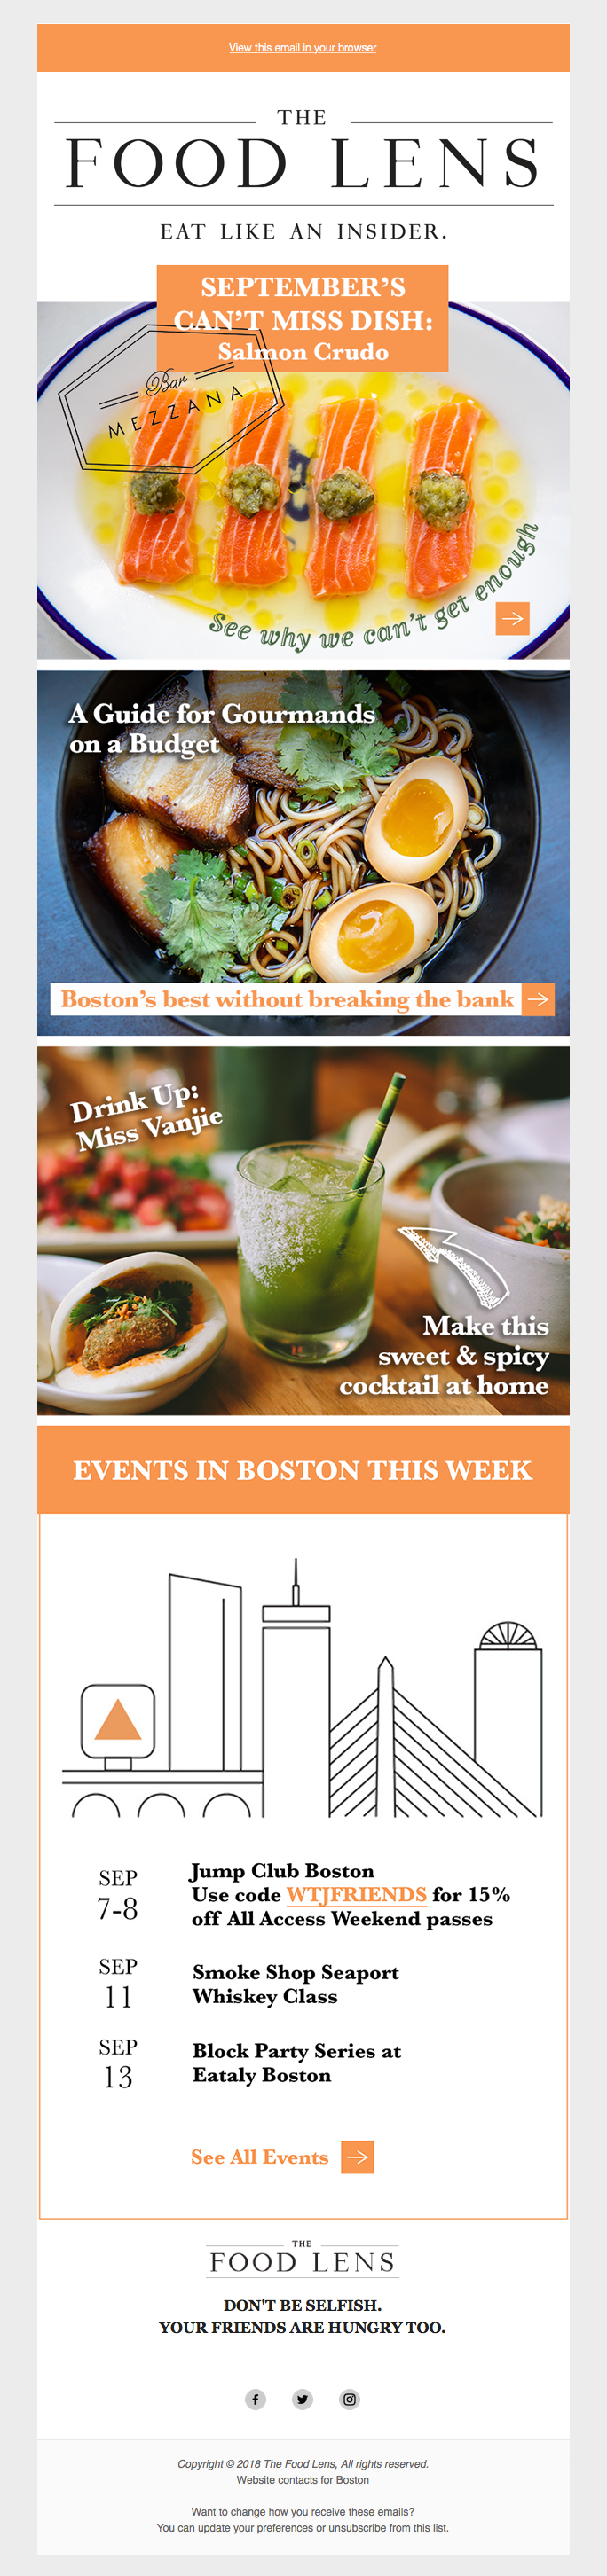 The Food Lens Email Campaign